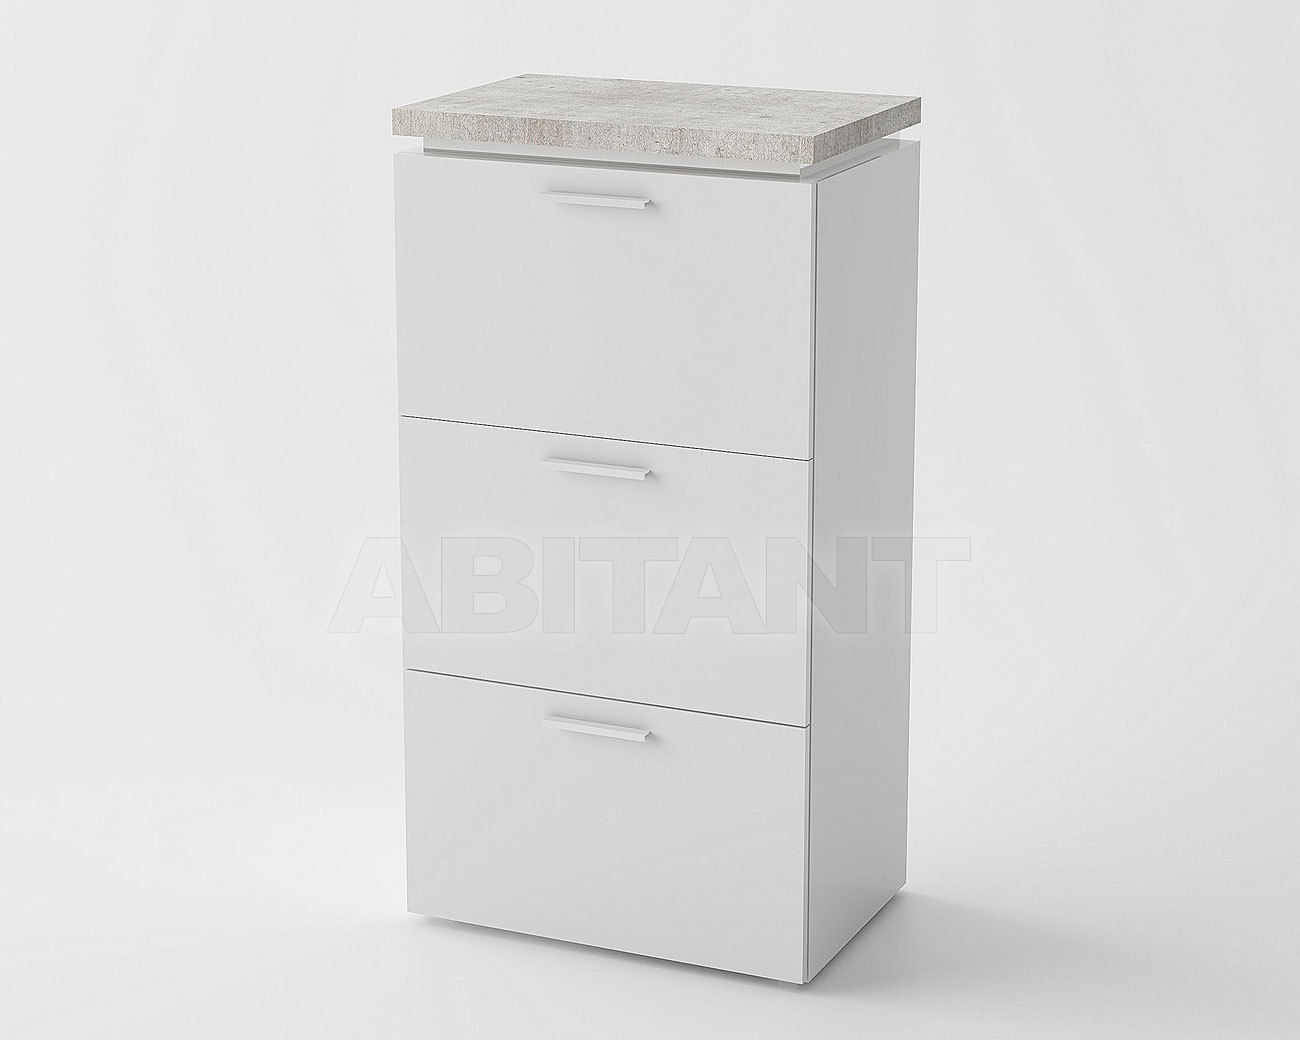 Buy Cupboard Shoe Cupboard White Tecnos 22210133 Buy оrder оnline